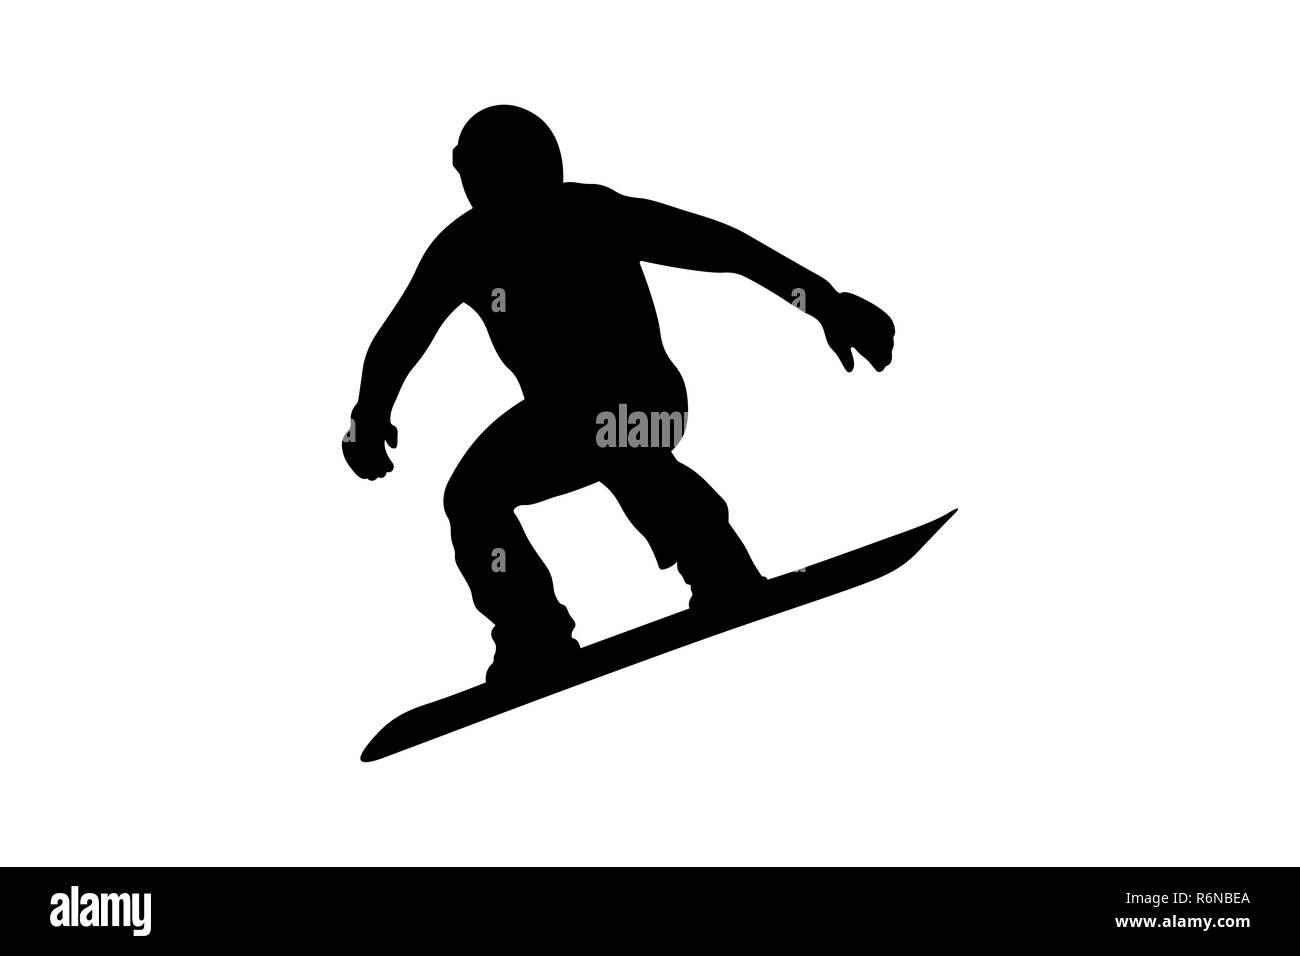 male snowboarder jumping on snowboard black silhouette - Stock Image